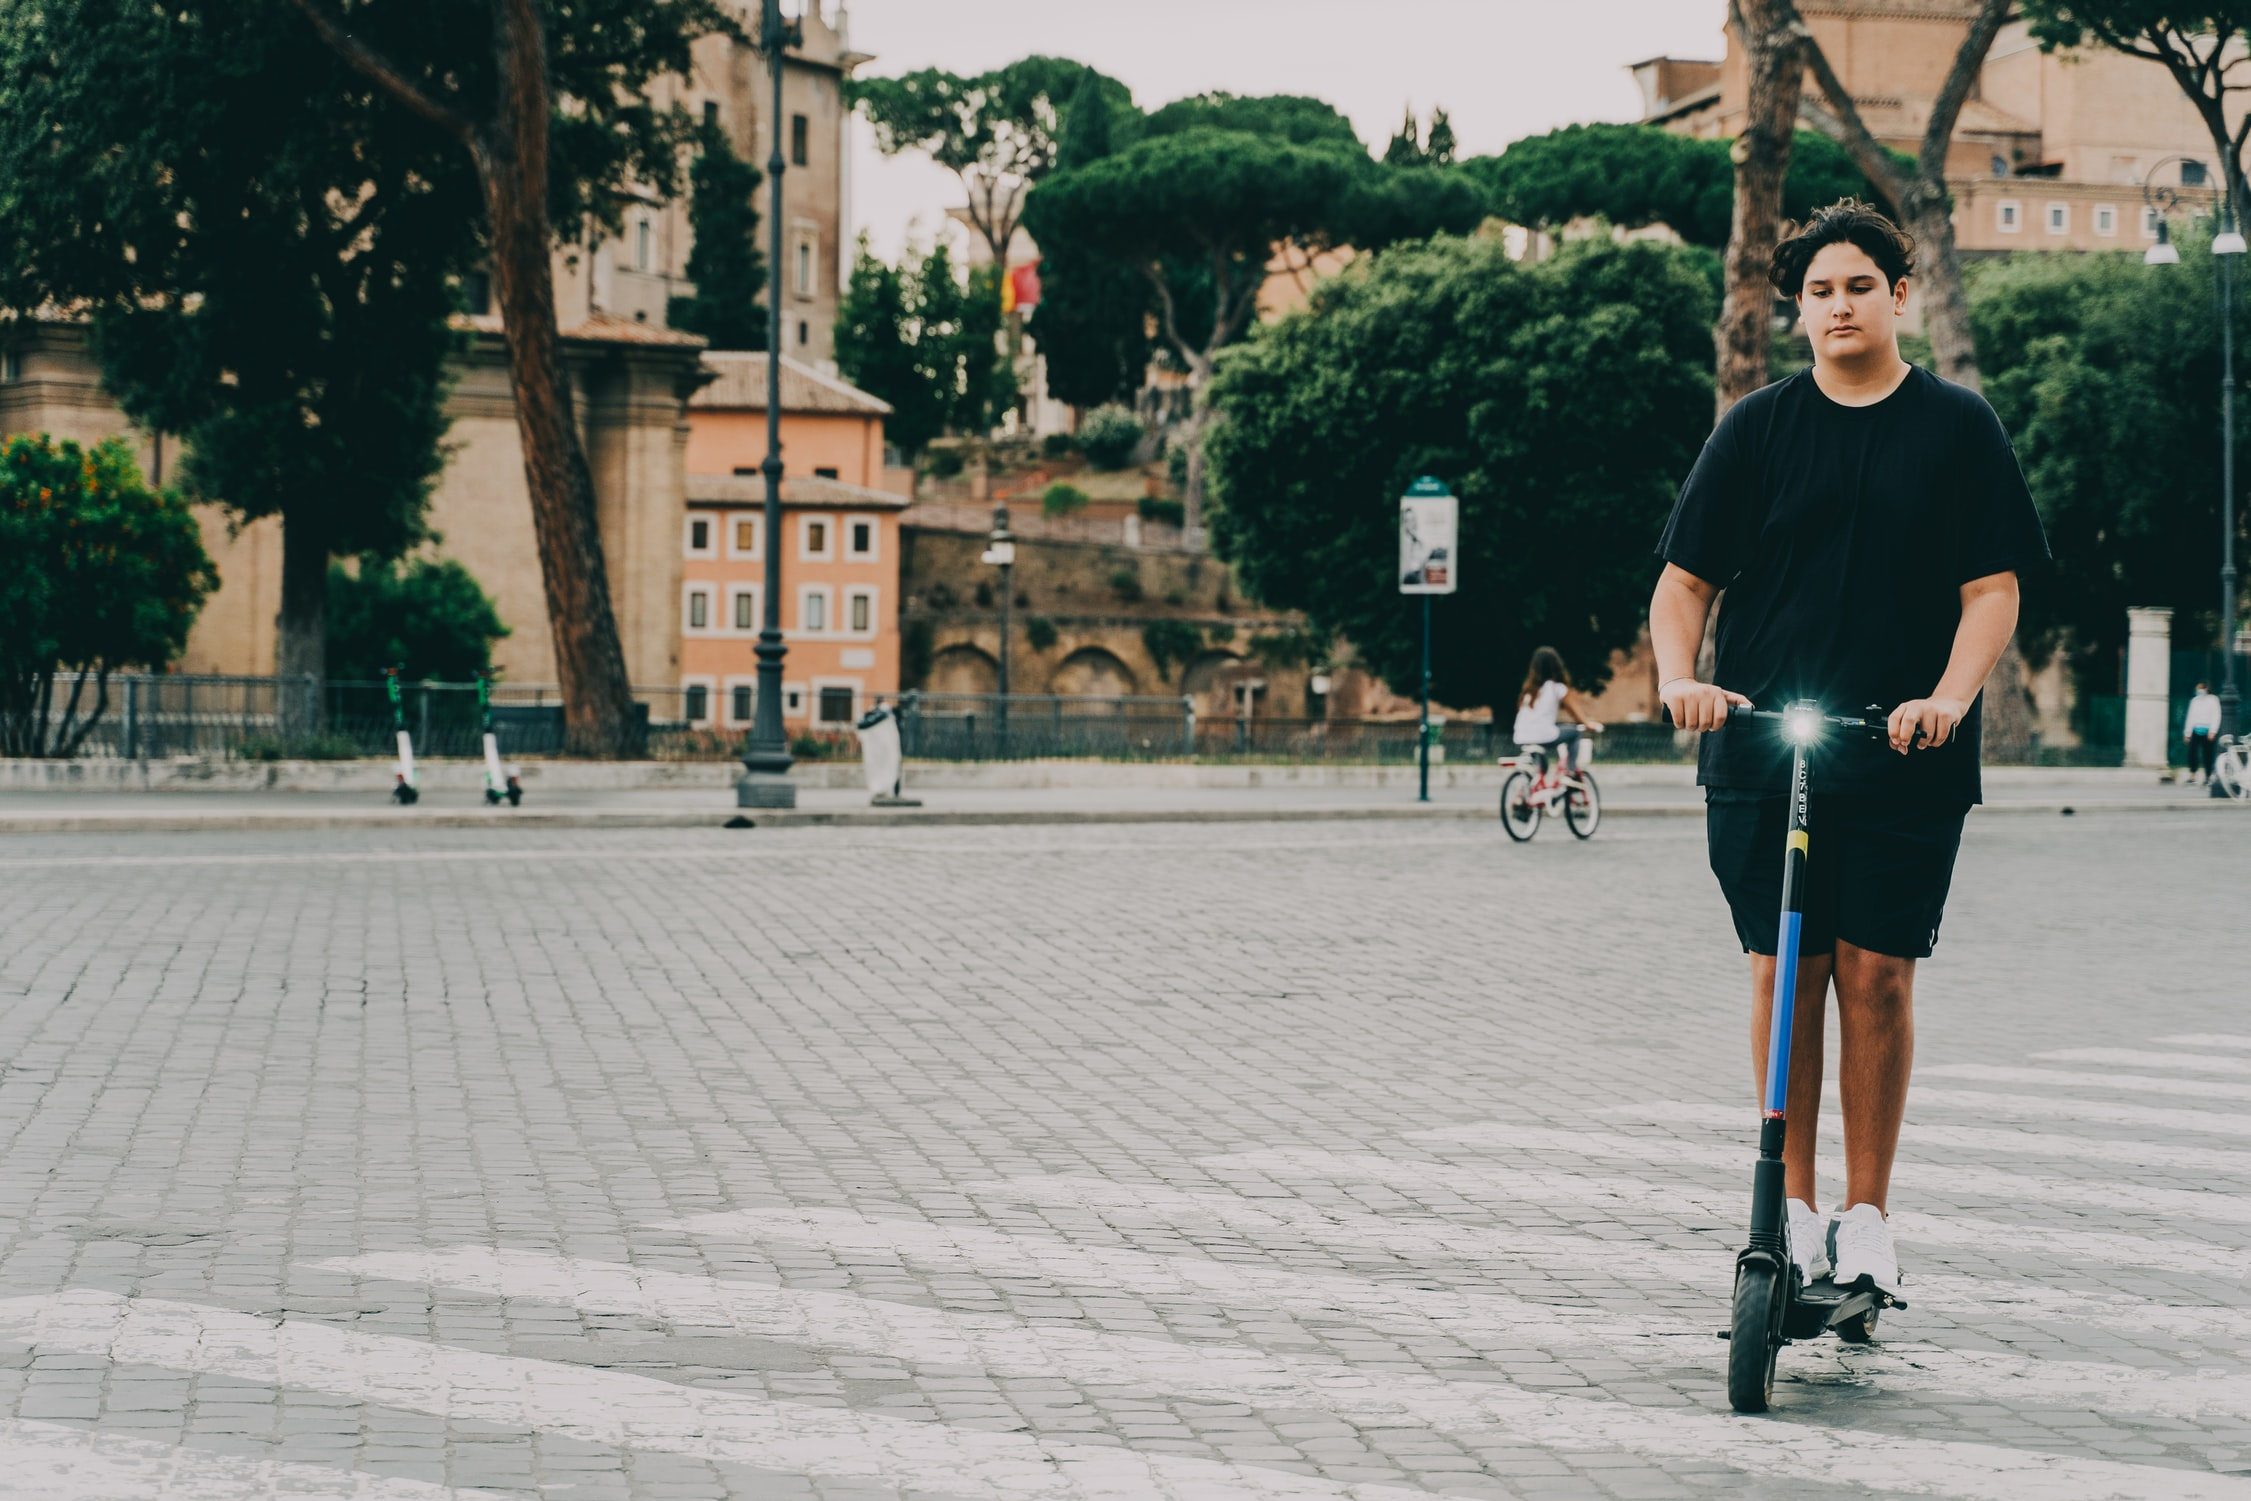 Most European countries have e-scooter regulation, but the UK is lagging behind.